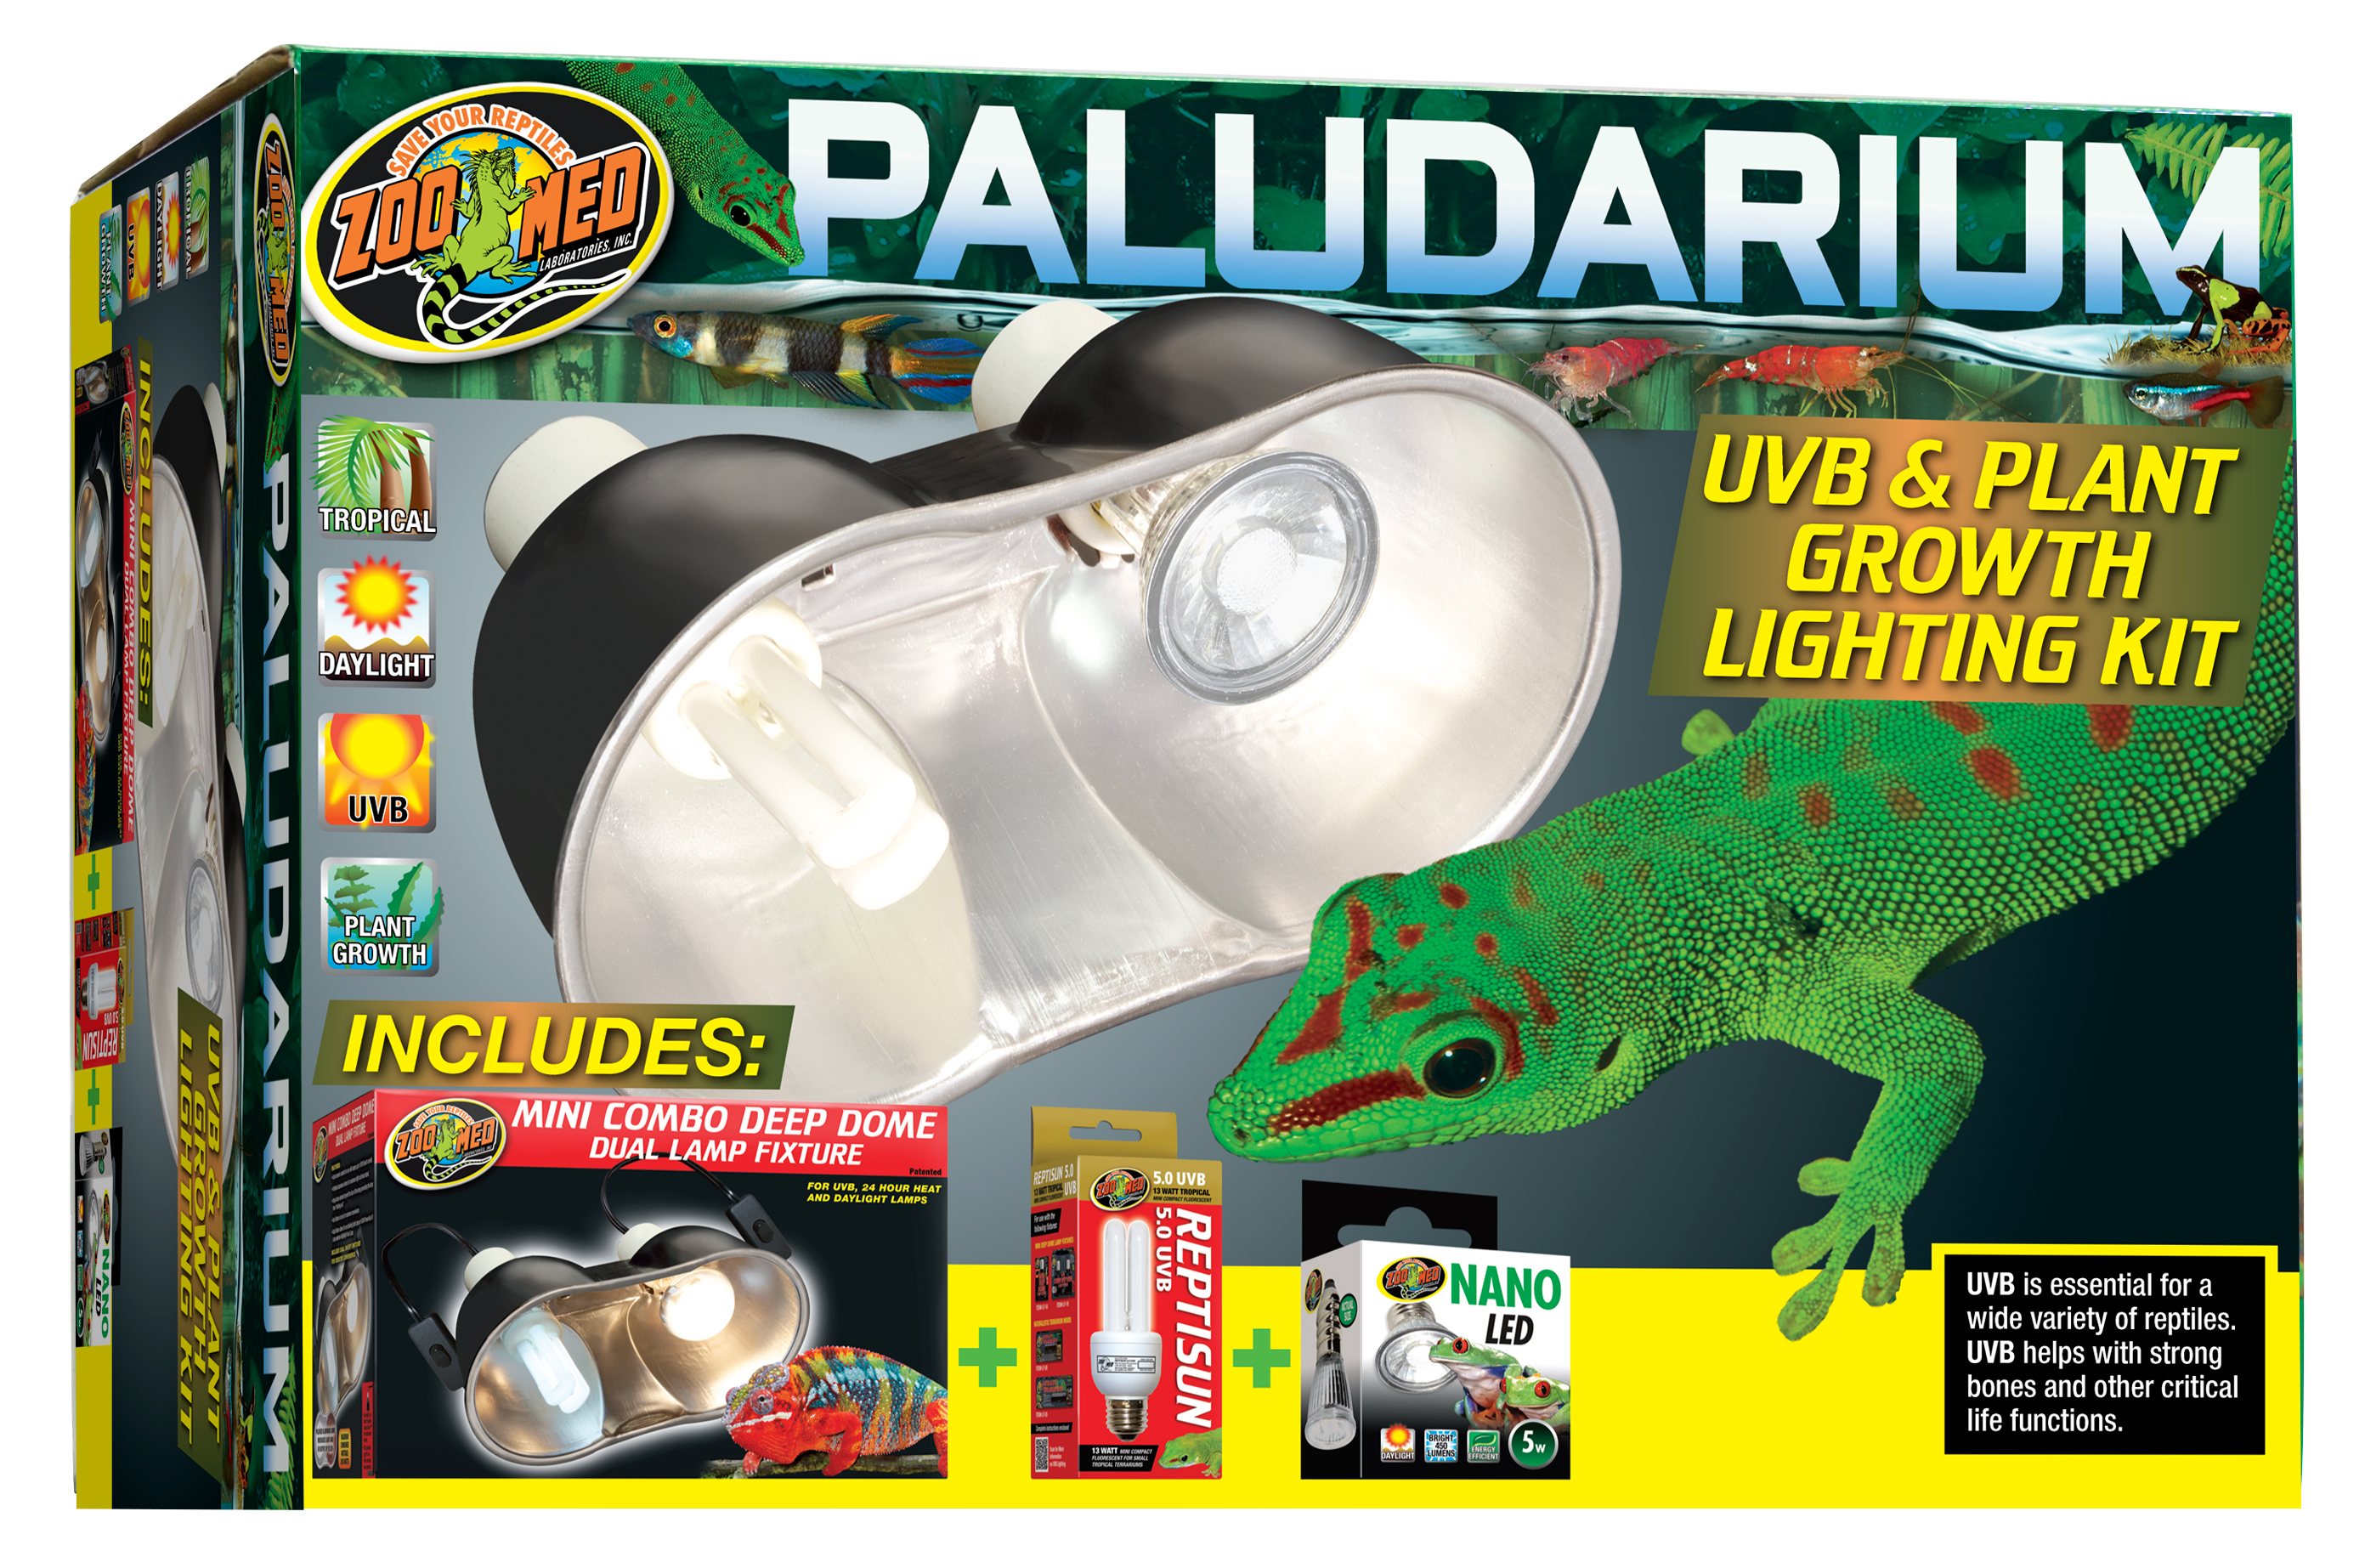 Zoo Med Paludarium UVB & Plant Growth Lighting Kit for Reptiles